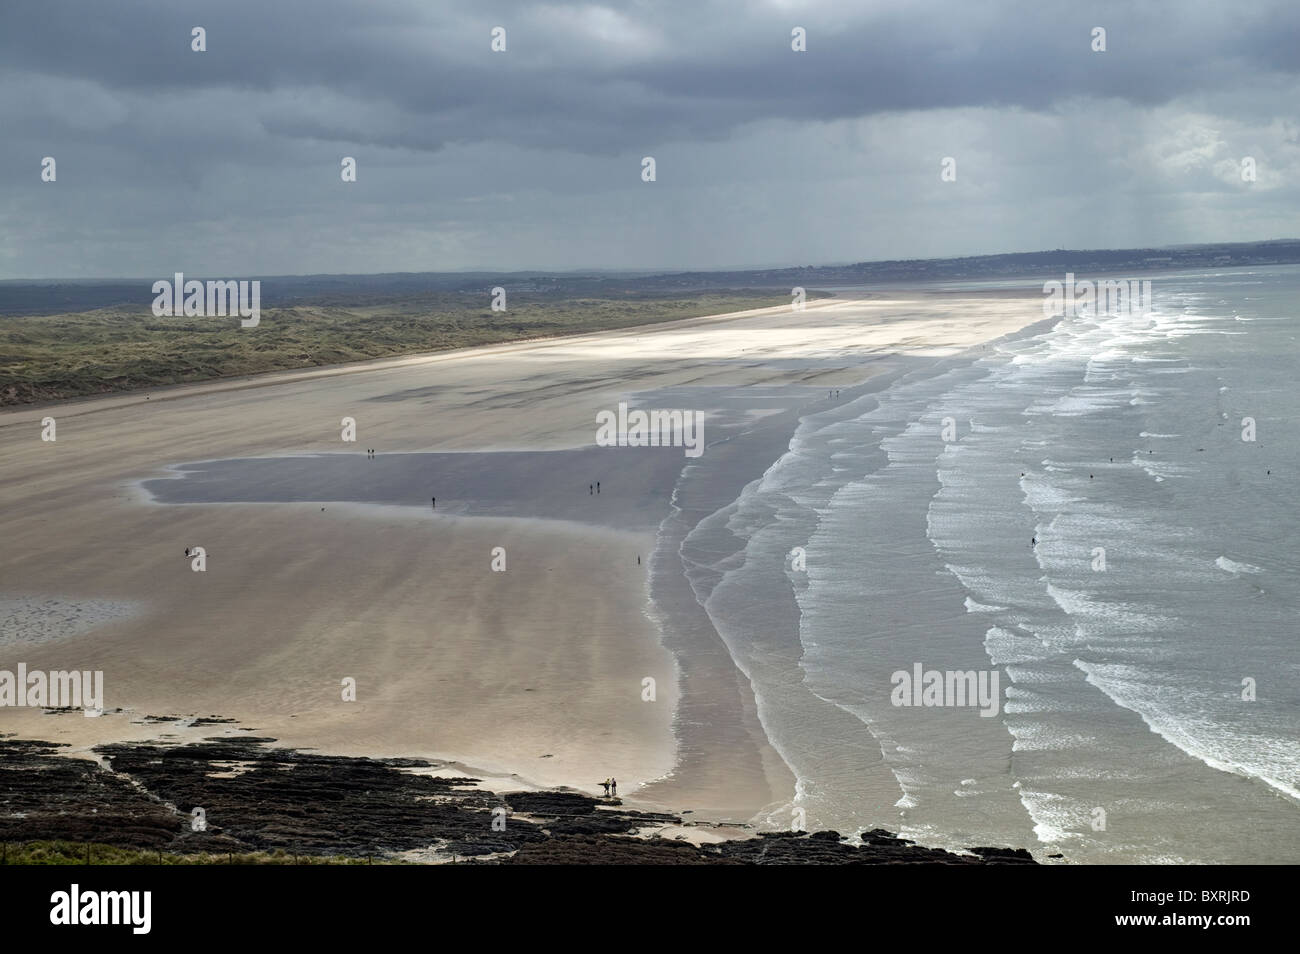 Great Britain, England, Devon, the Braunton Burrows sand dune system, Saunton Sands beach Stock Photo